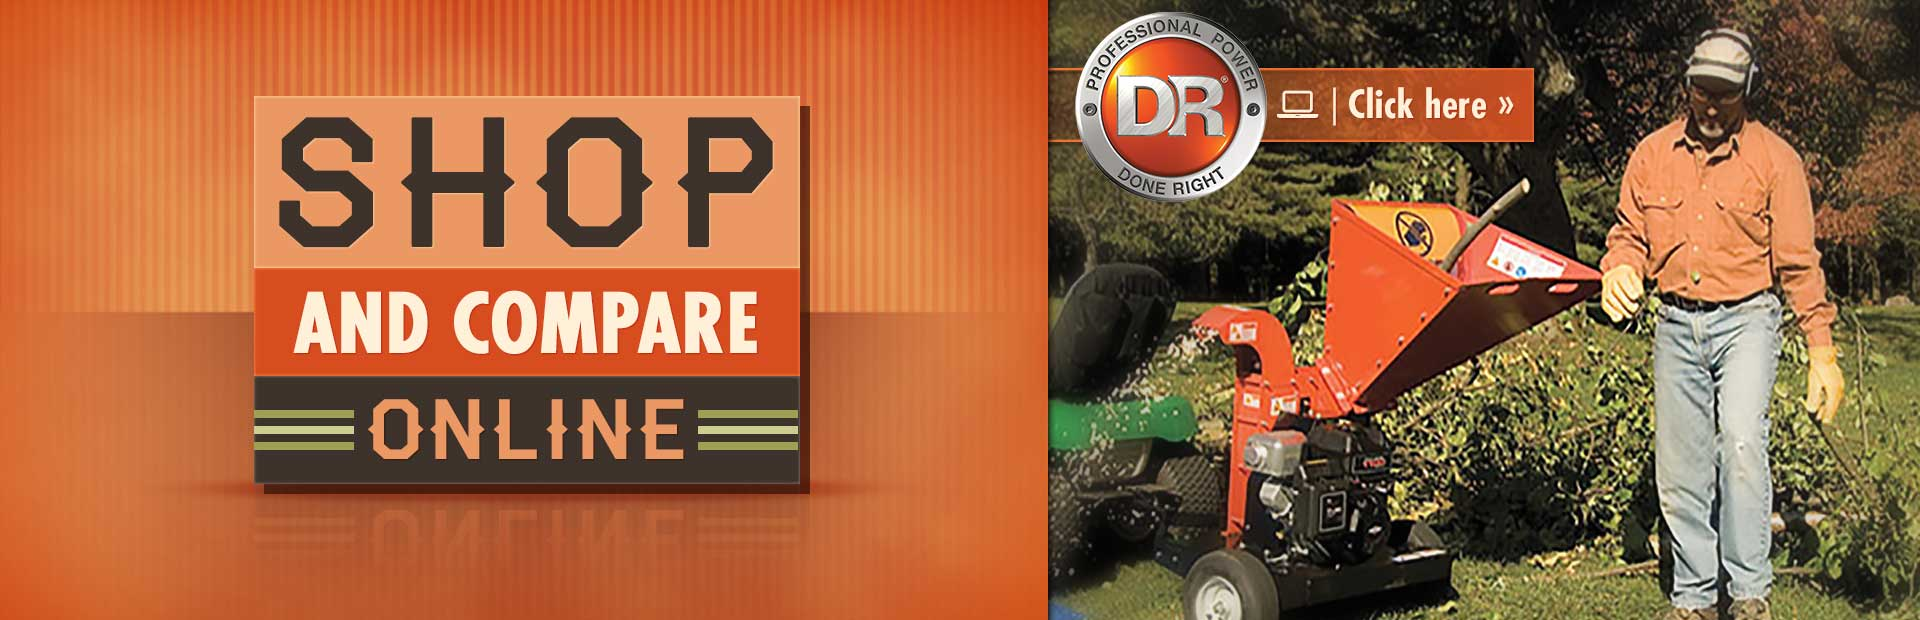 DR Power Equipment: Click here to shop and compare online.